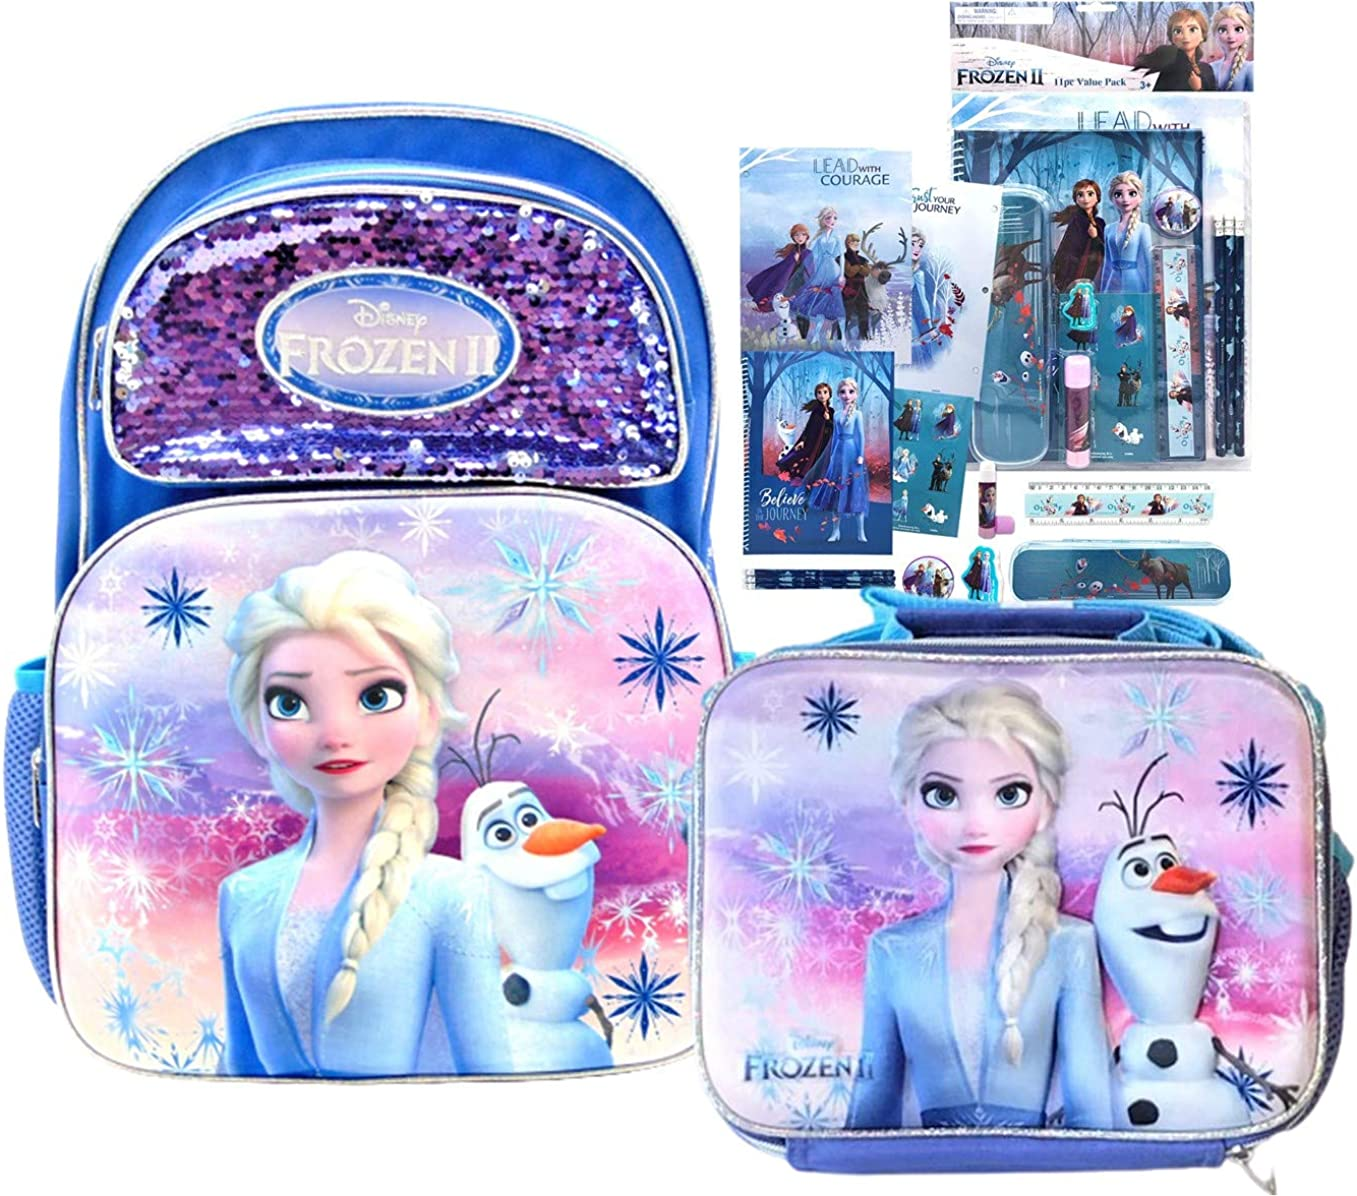 Disney Frozen II Full Size Elsa Sequin Backpack, Lunch Box & Stationery Set